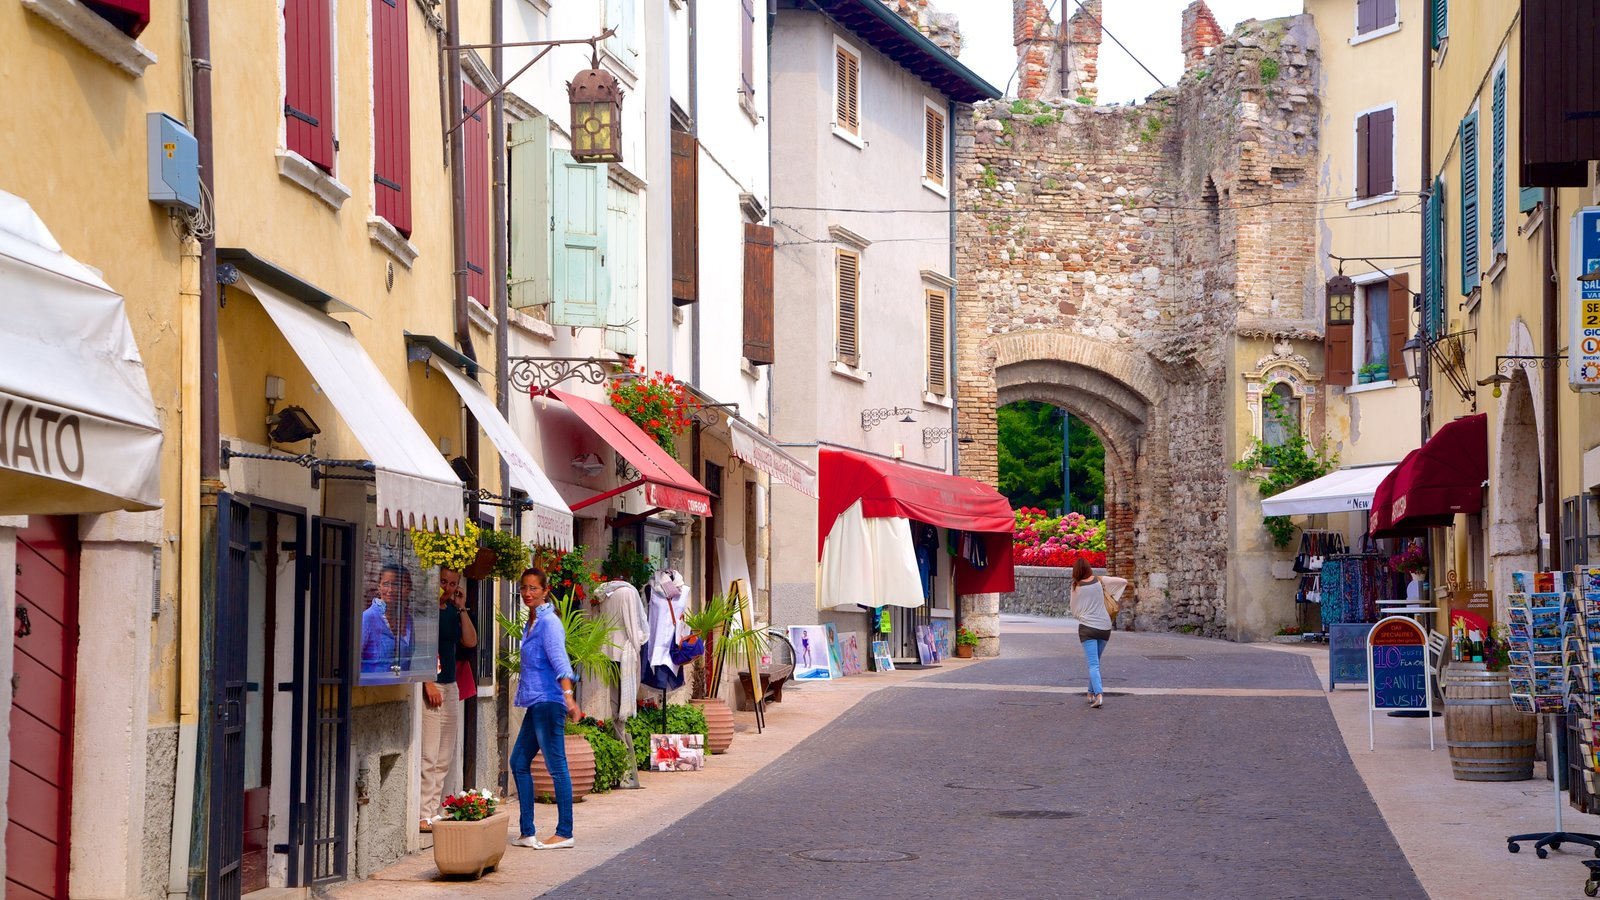 Lazise featuring a small town or village and street scenes